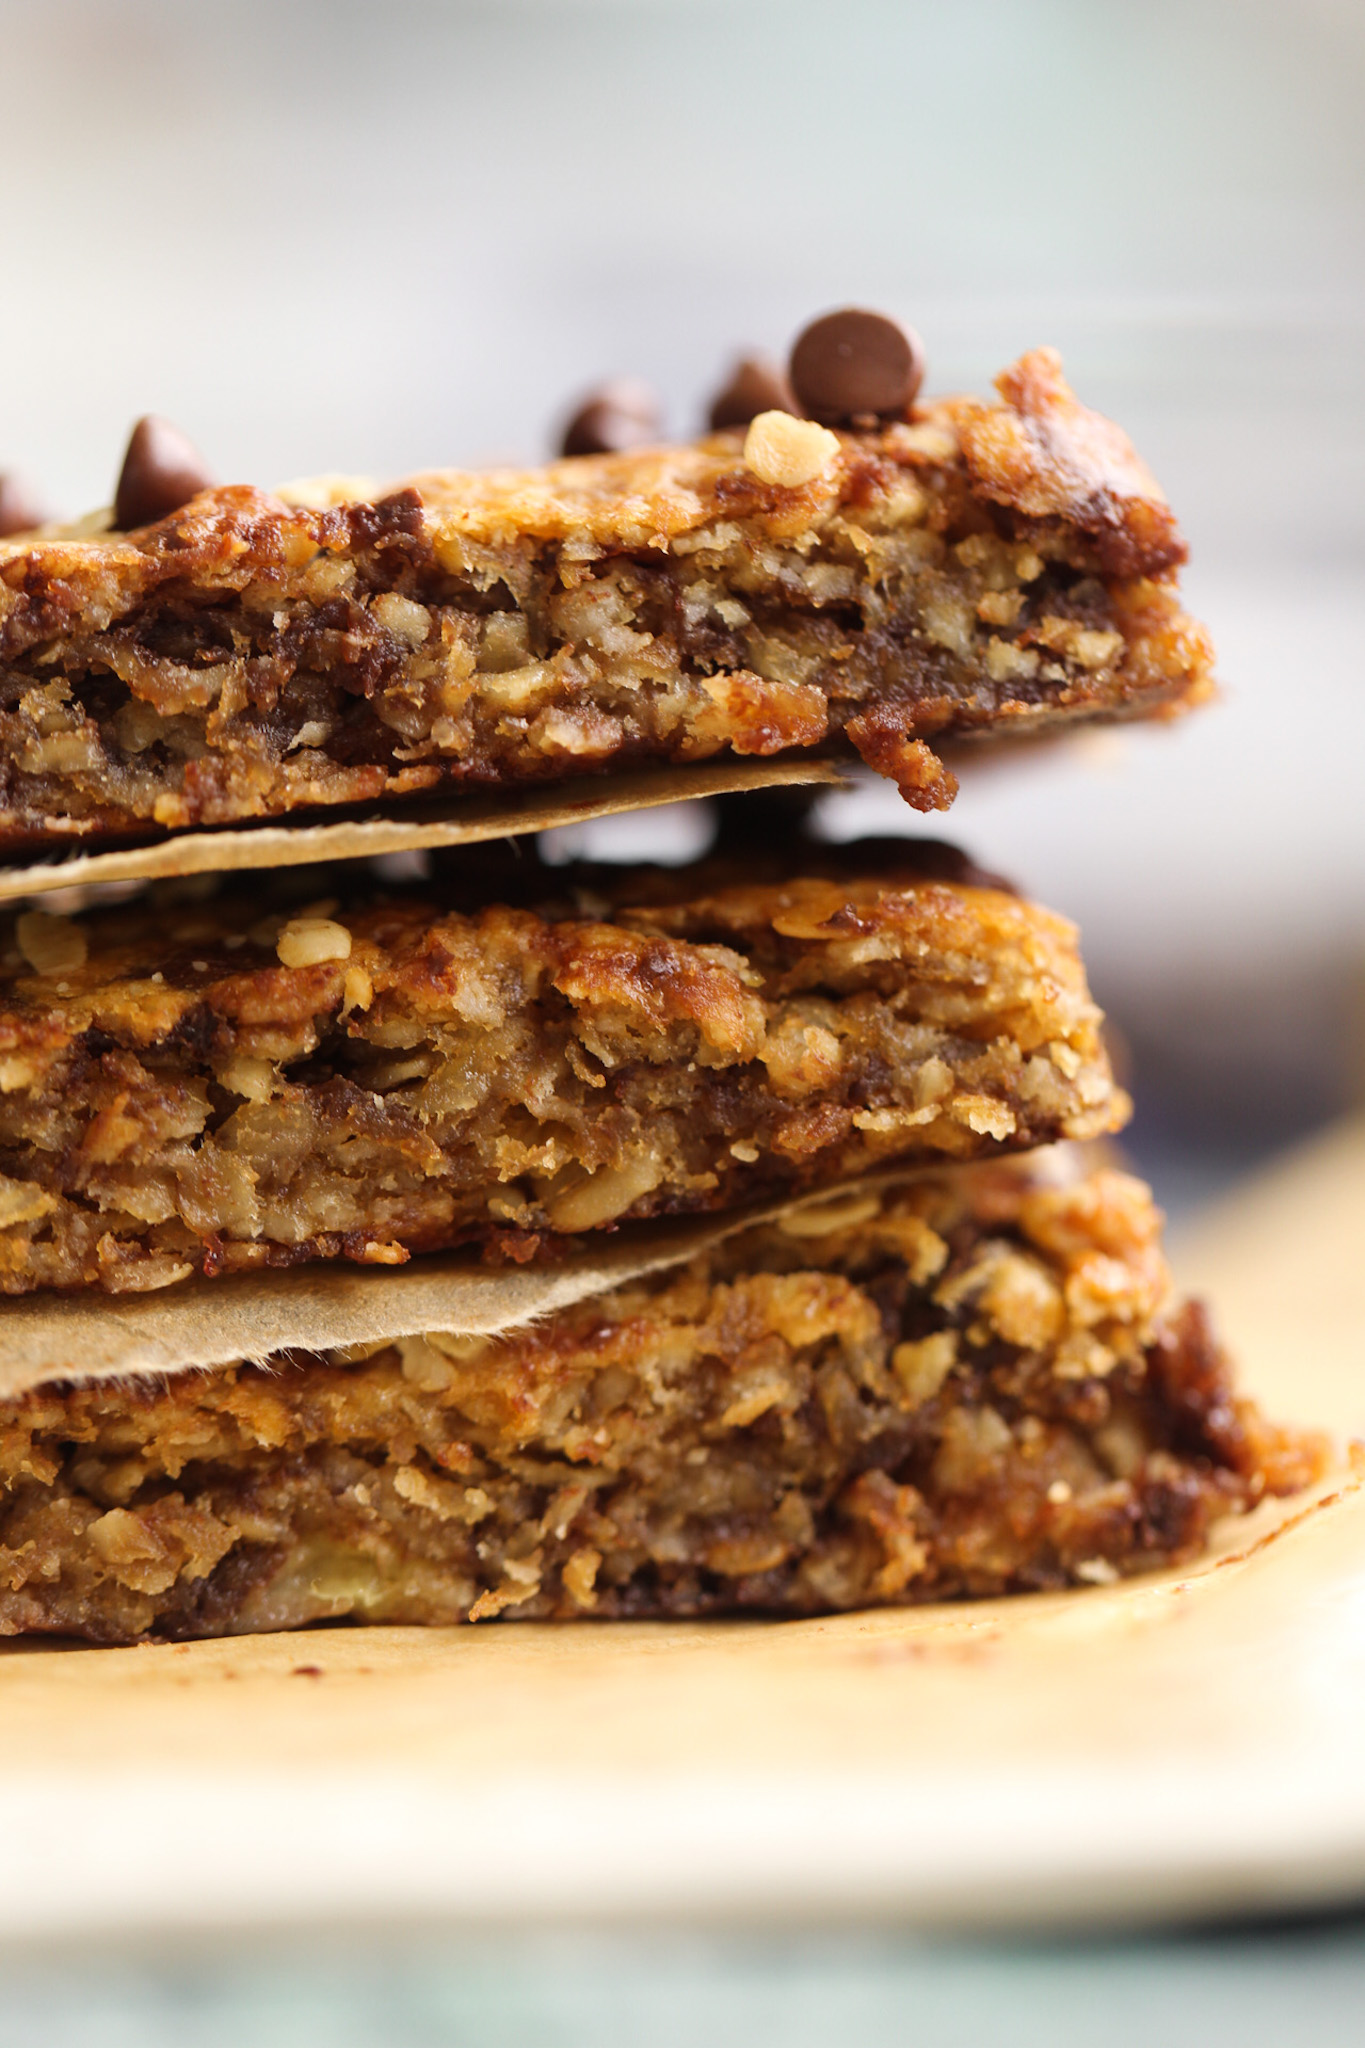 side view of Peanut Butter Banana Chocolate Chip Flapjacks